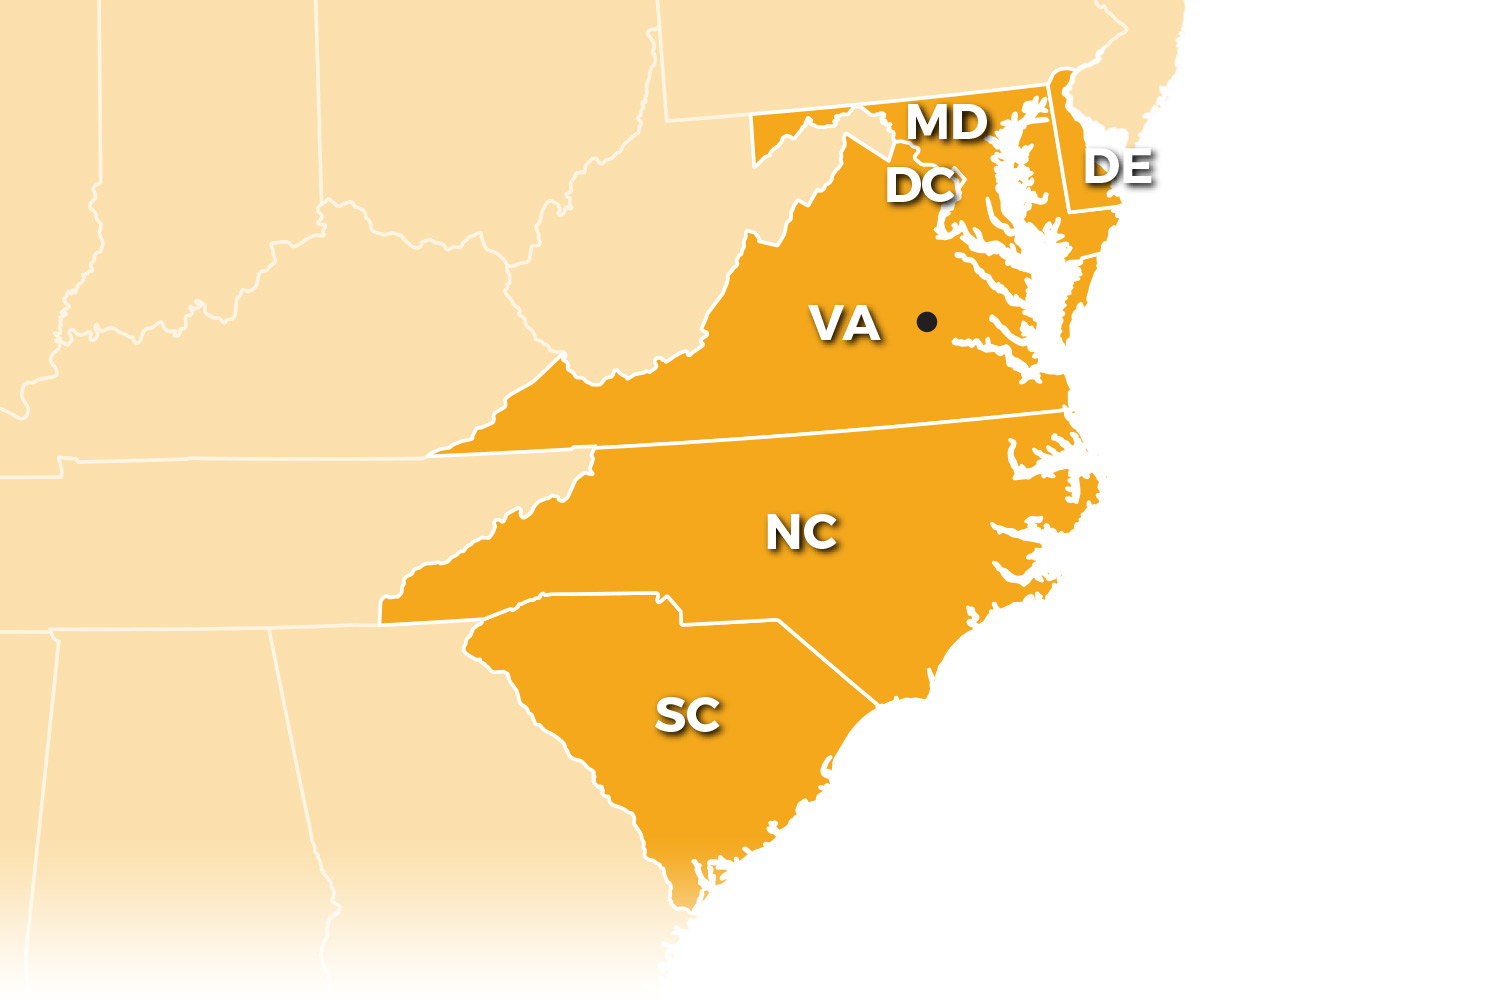 Benchmark is available to provide service to Virginia, D.C., Maryland, North Carolina, South Carolina, and Delaware.